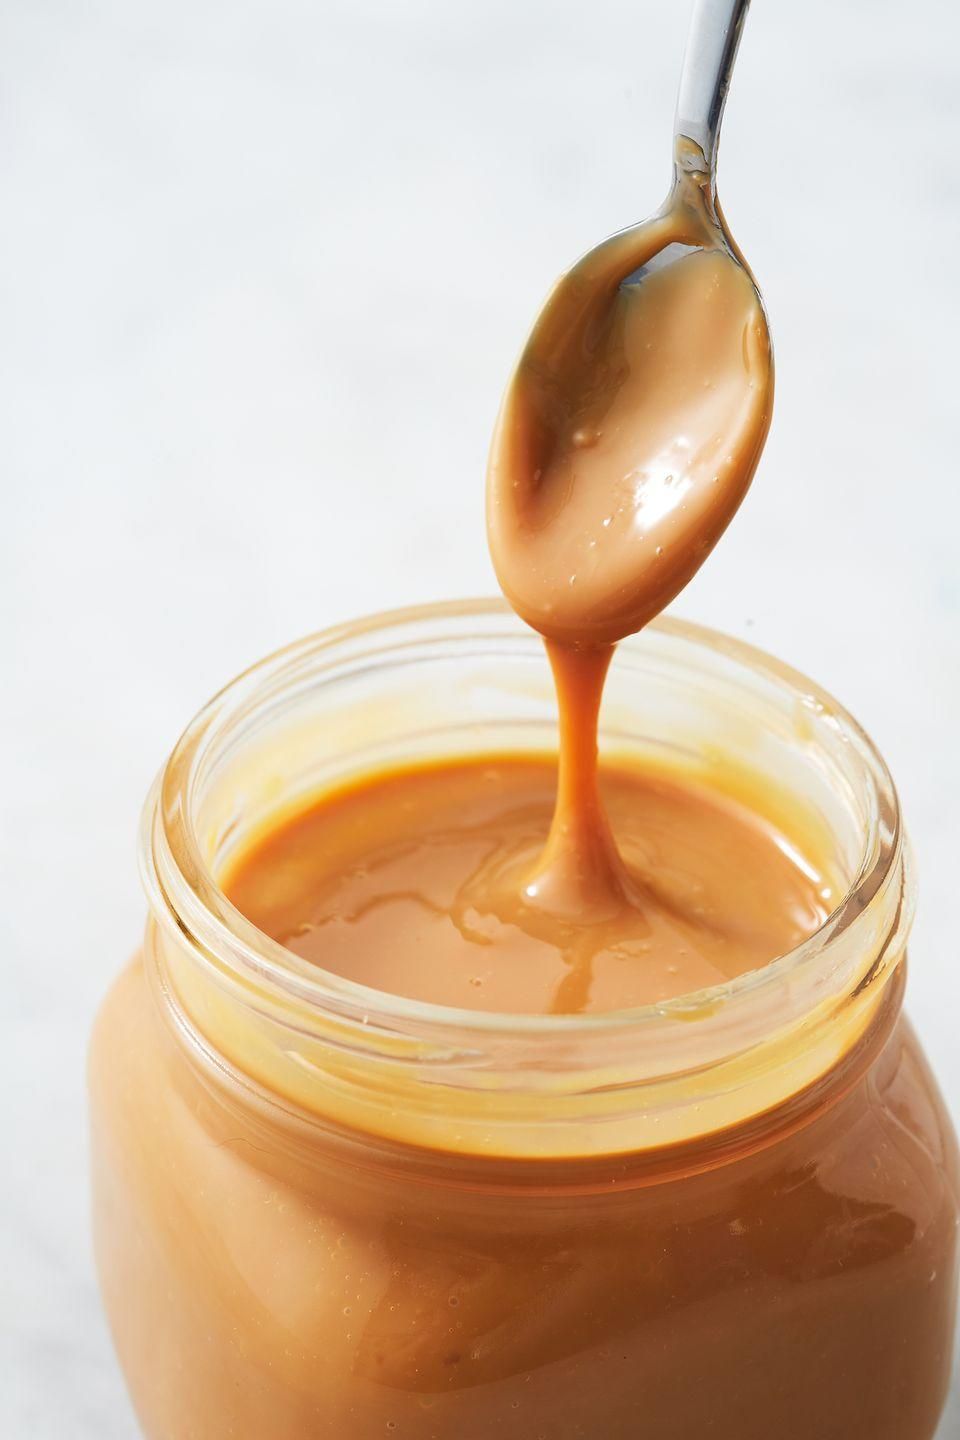 "<p>The sauce that should be used on everything, from ice cream to coffee!</p><p>Get the recipe from <a href=""https://www.delish.com/cooking/recipe-ideas/a27244513/dulce-de-leche-recipe/"" rel=""nofollow noopener"" target=""_blank"" data-ylk=""slk:Delish"" class=""link rapid-noclick-resp"">Delish</a>. </p>"